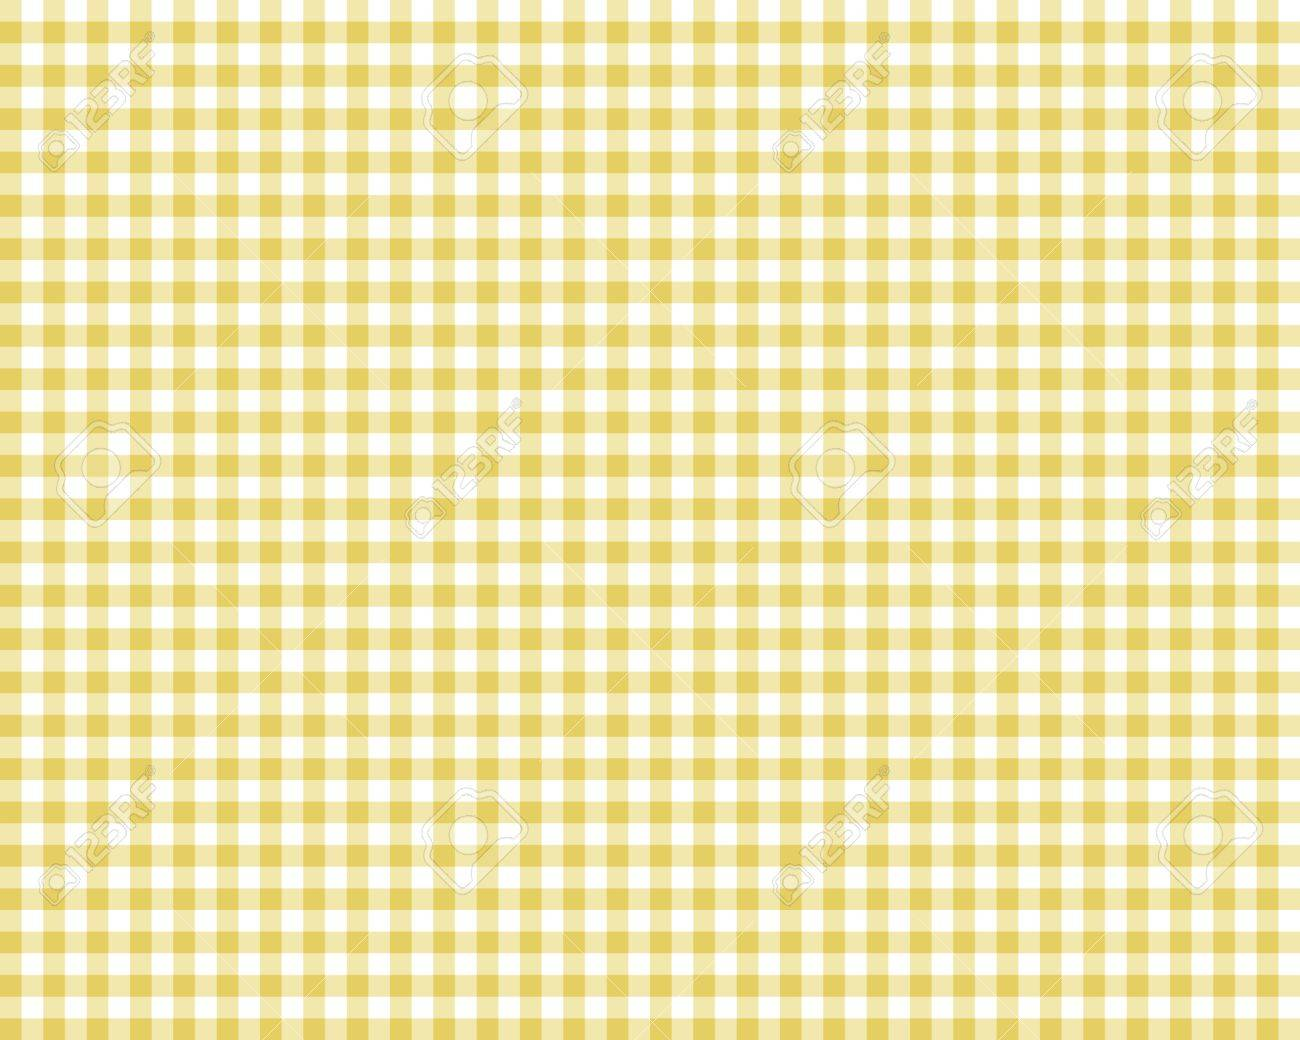 Attirant Vector   Yellow Checkered Picnic Tablecloth, Abstract Background